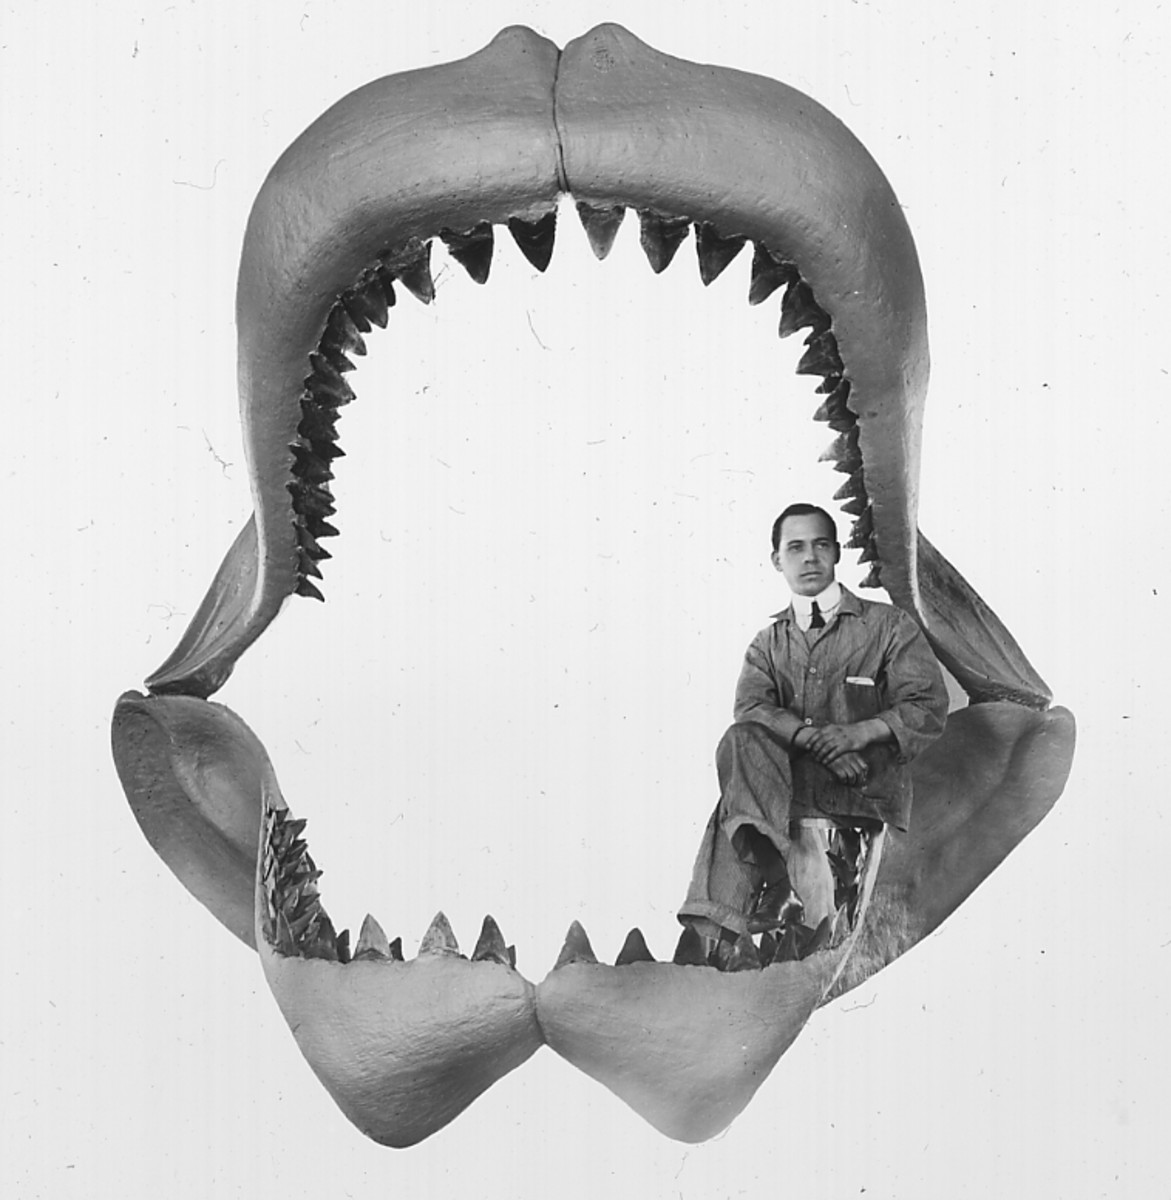 A fossil jaw of the Megalodon with a man sitting inside.